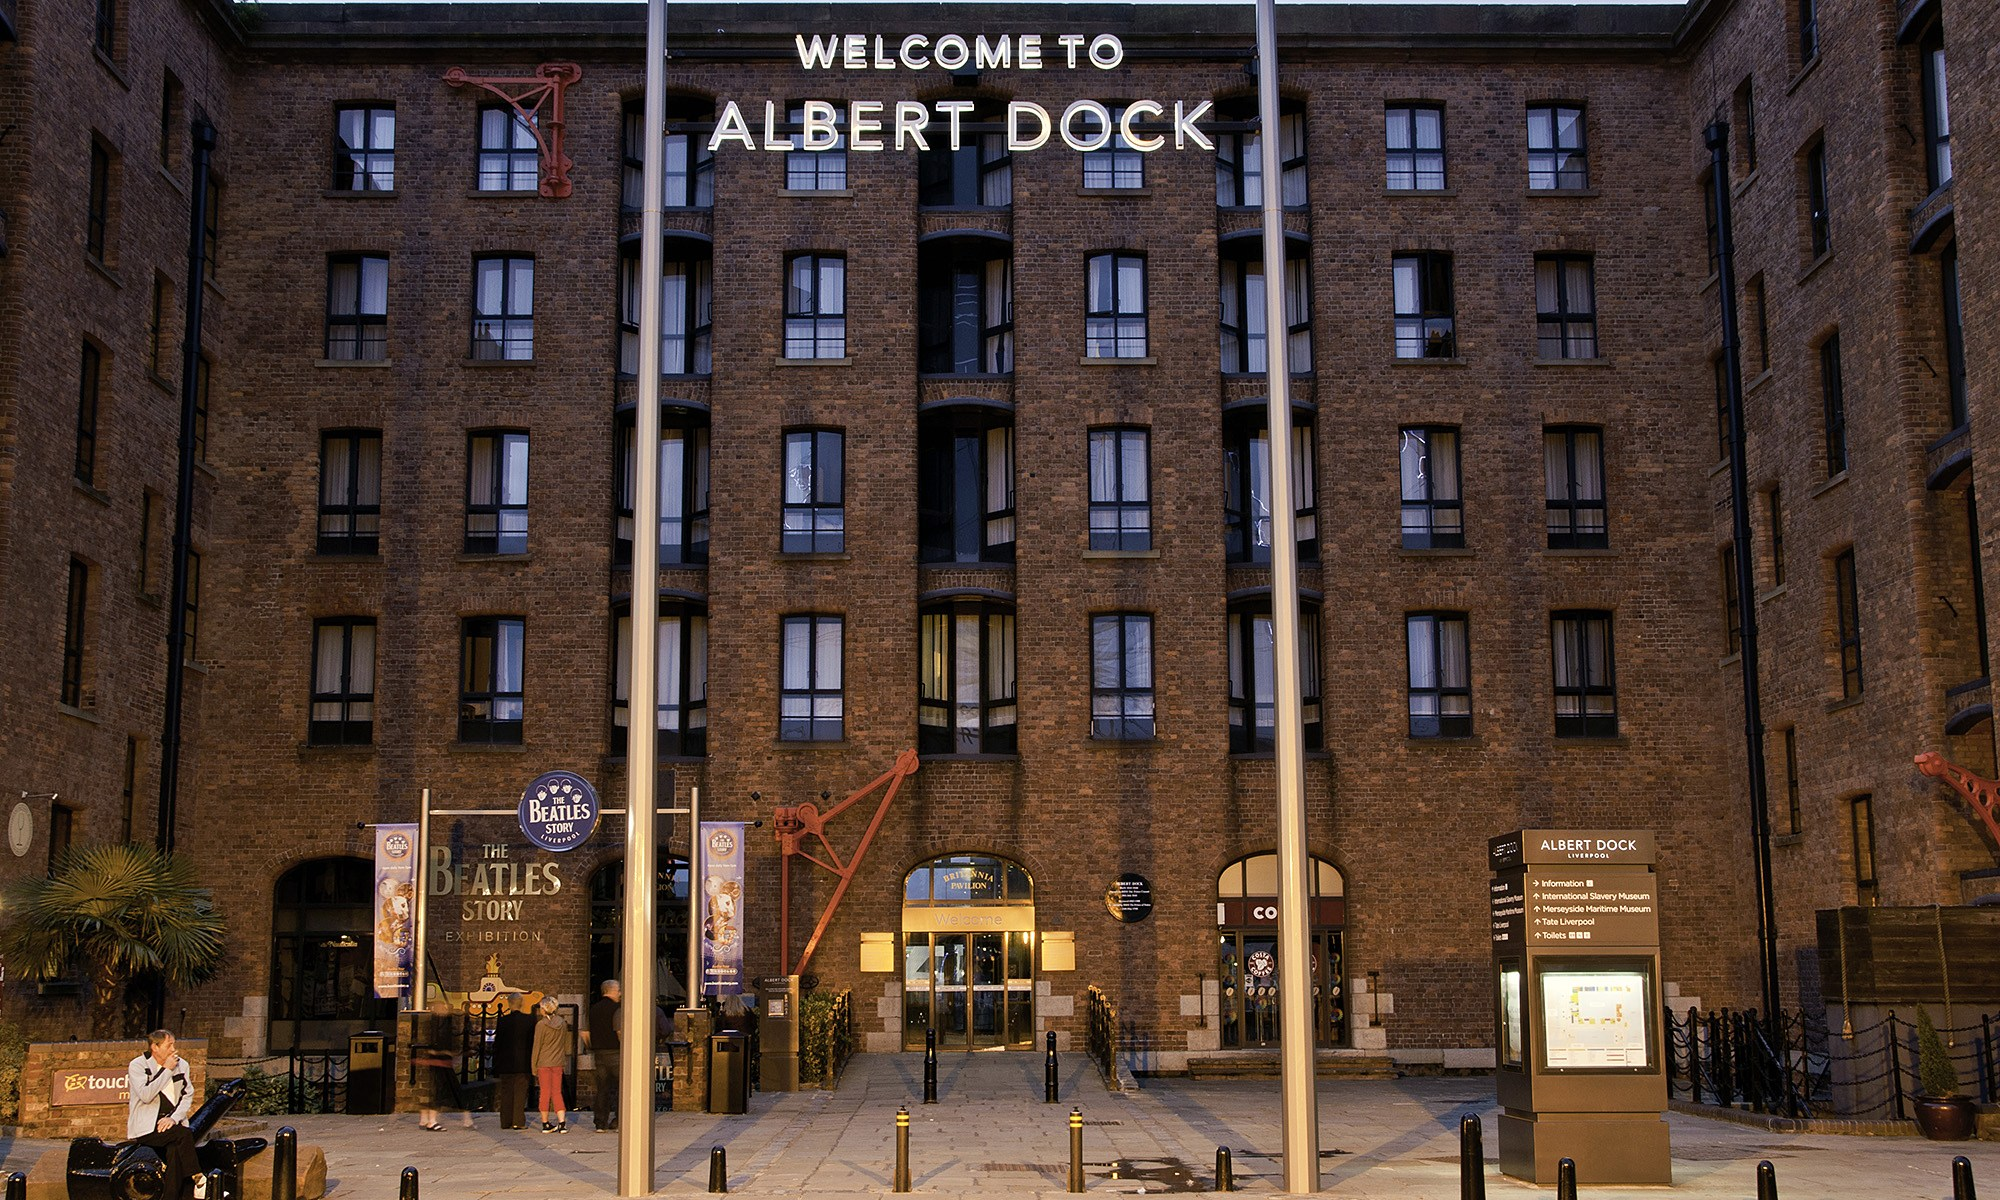 Welcome to the Albert Dock